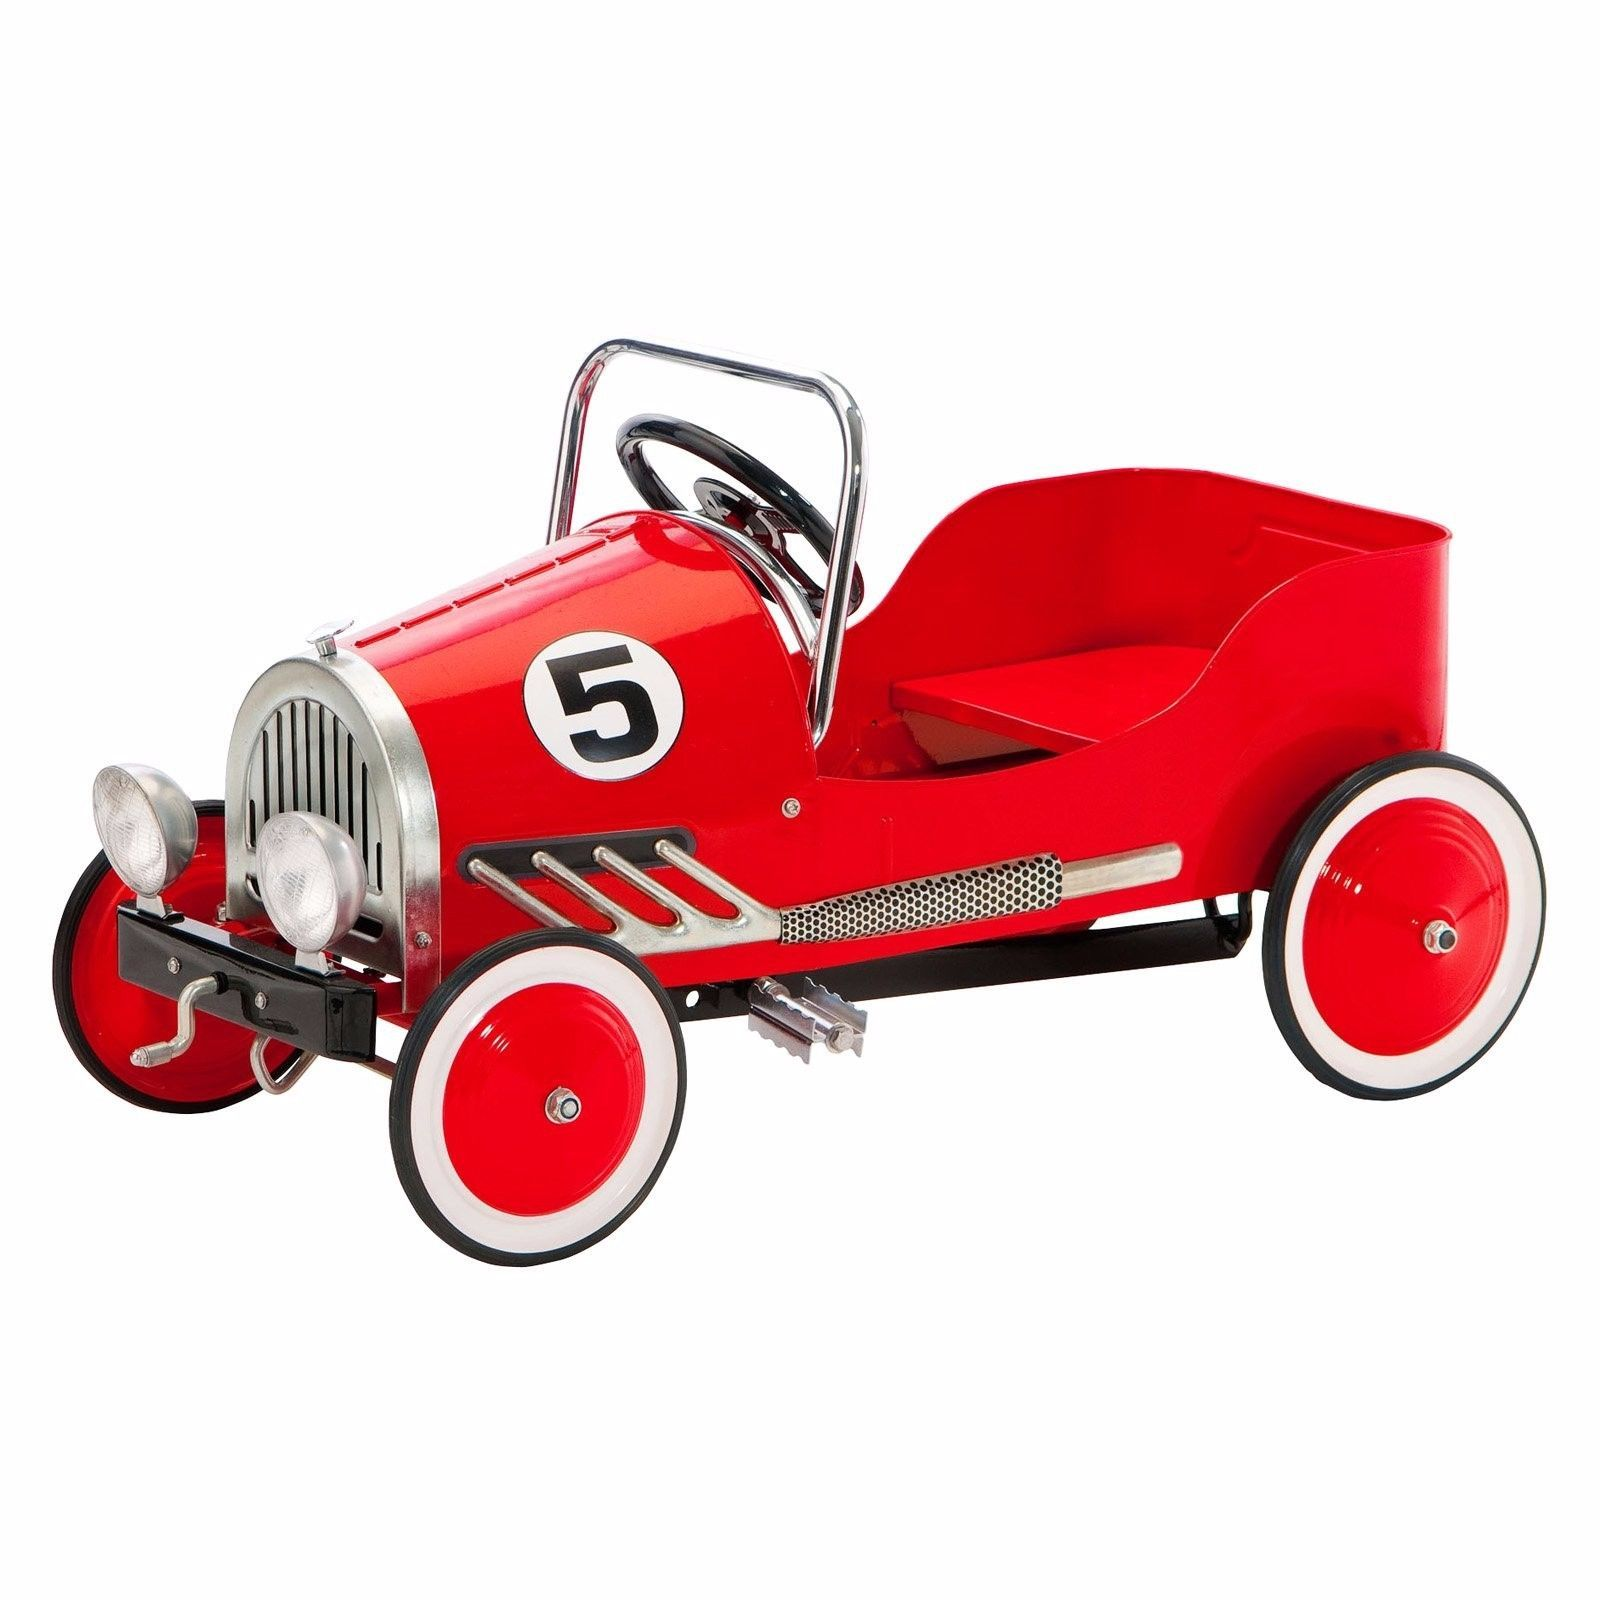 1970-Now 19022: Morgan Cycle Vintage Retro Pedal Car Riding Toy ...